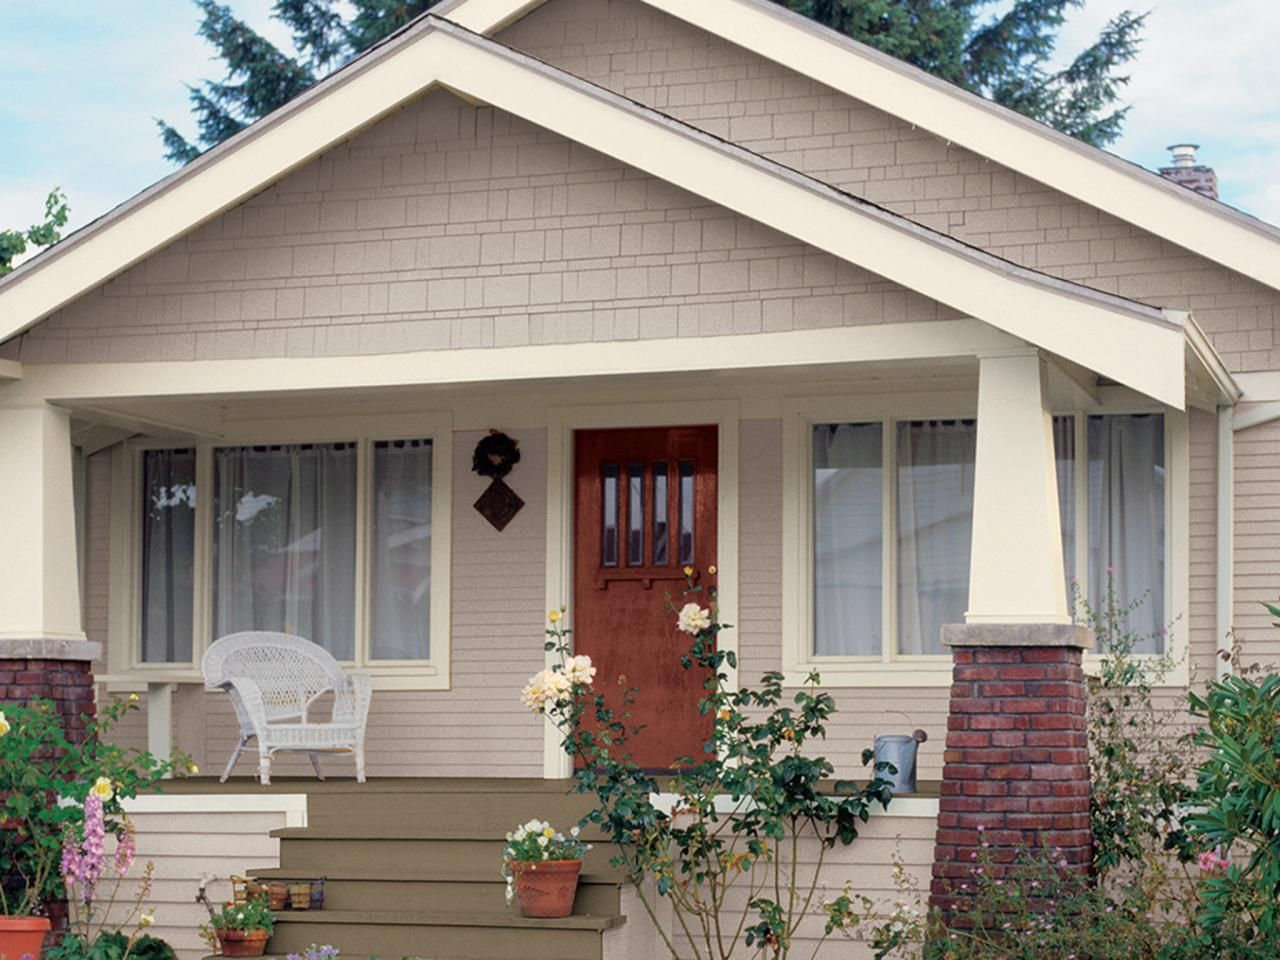 Exterior house color ideas craftsman - 20 Inviting Home Exterior Color Ideas Outdoor Design Landscaping Ideas Porches Decks